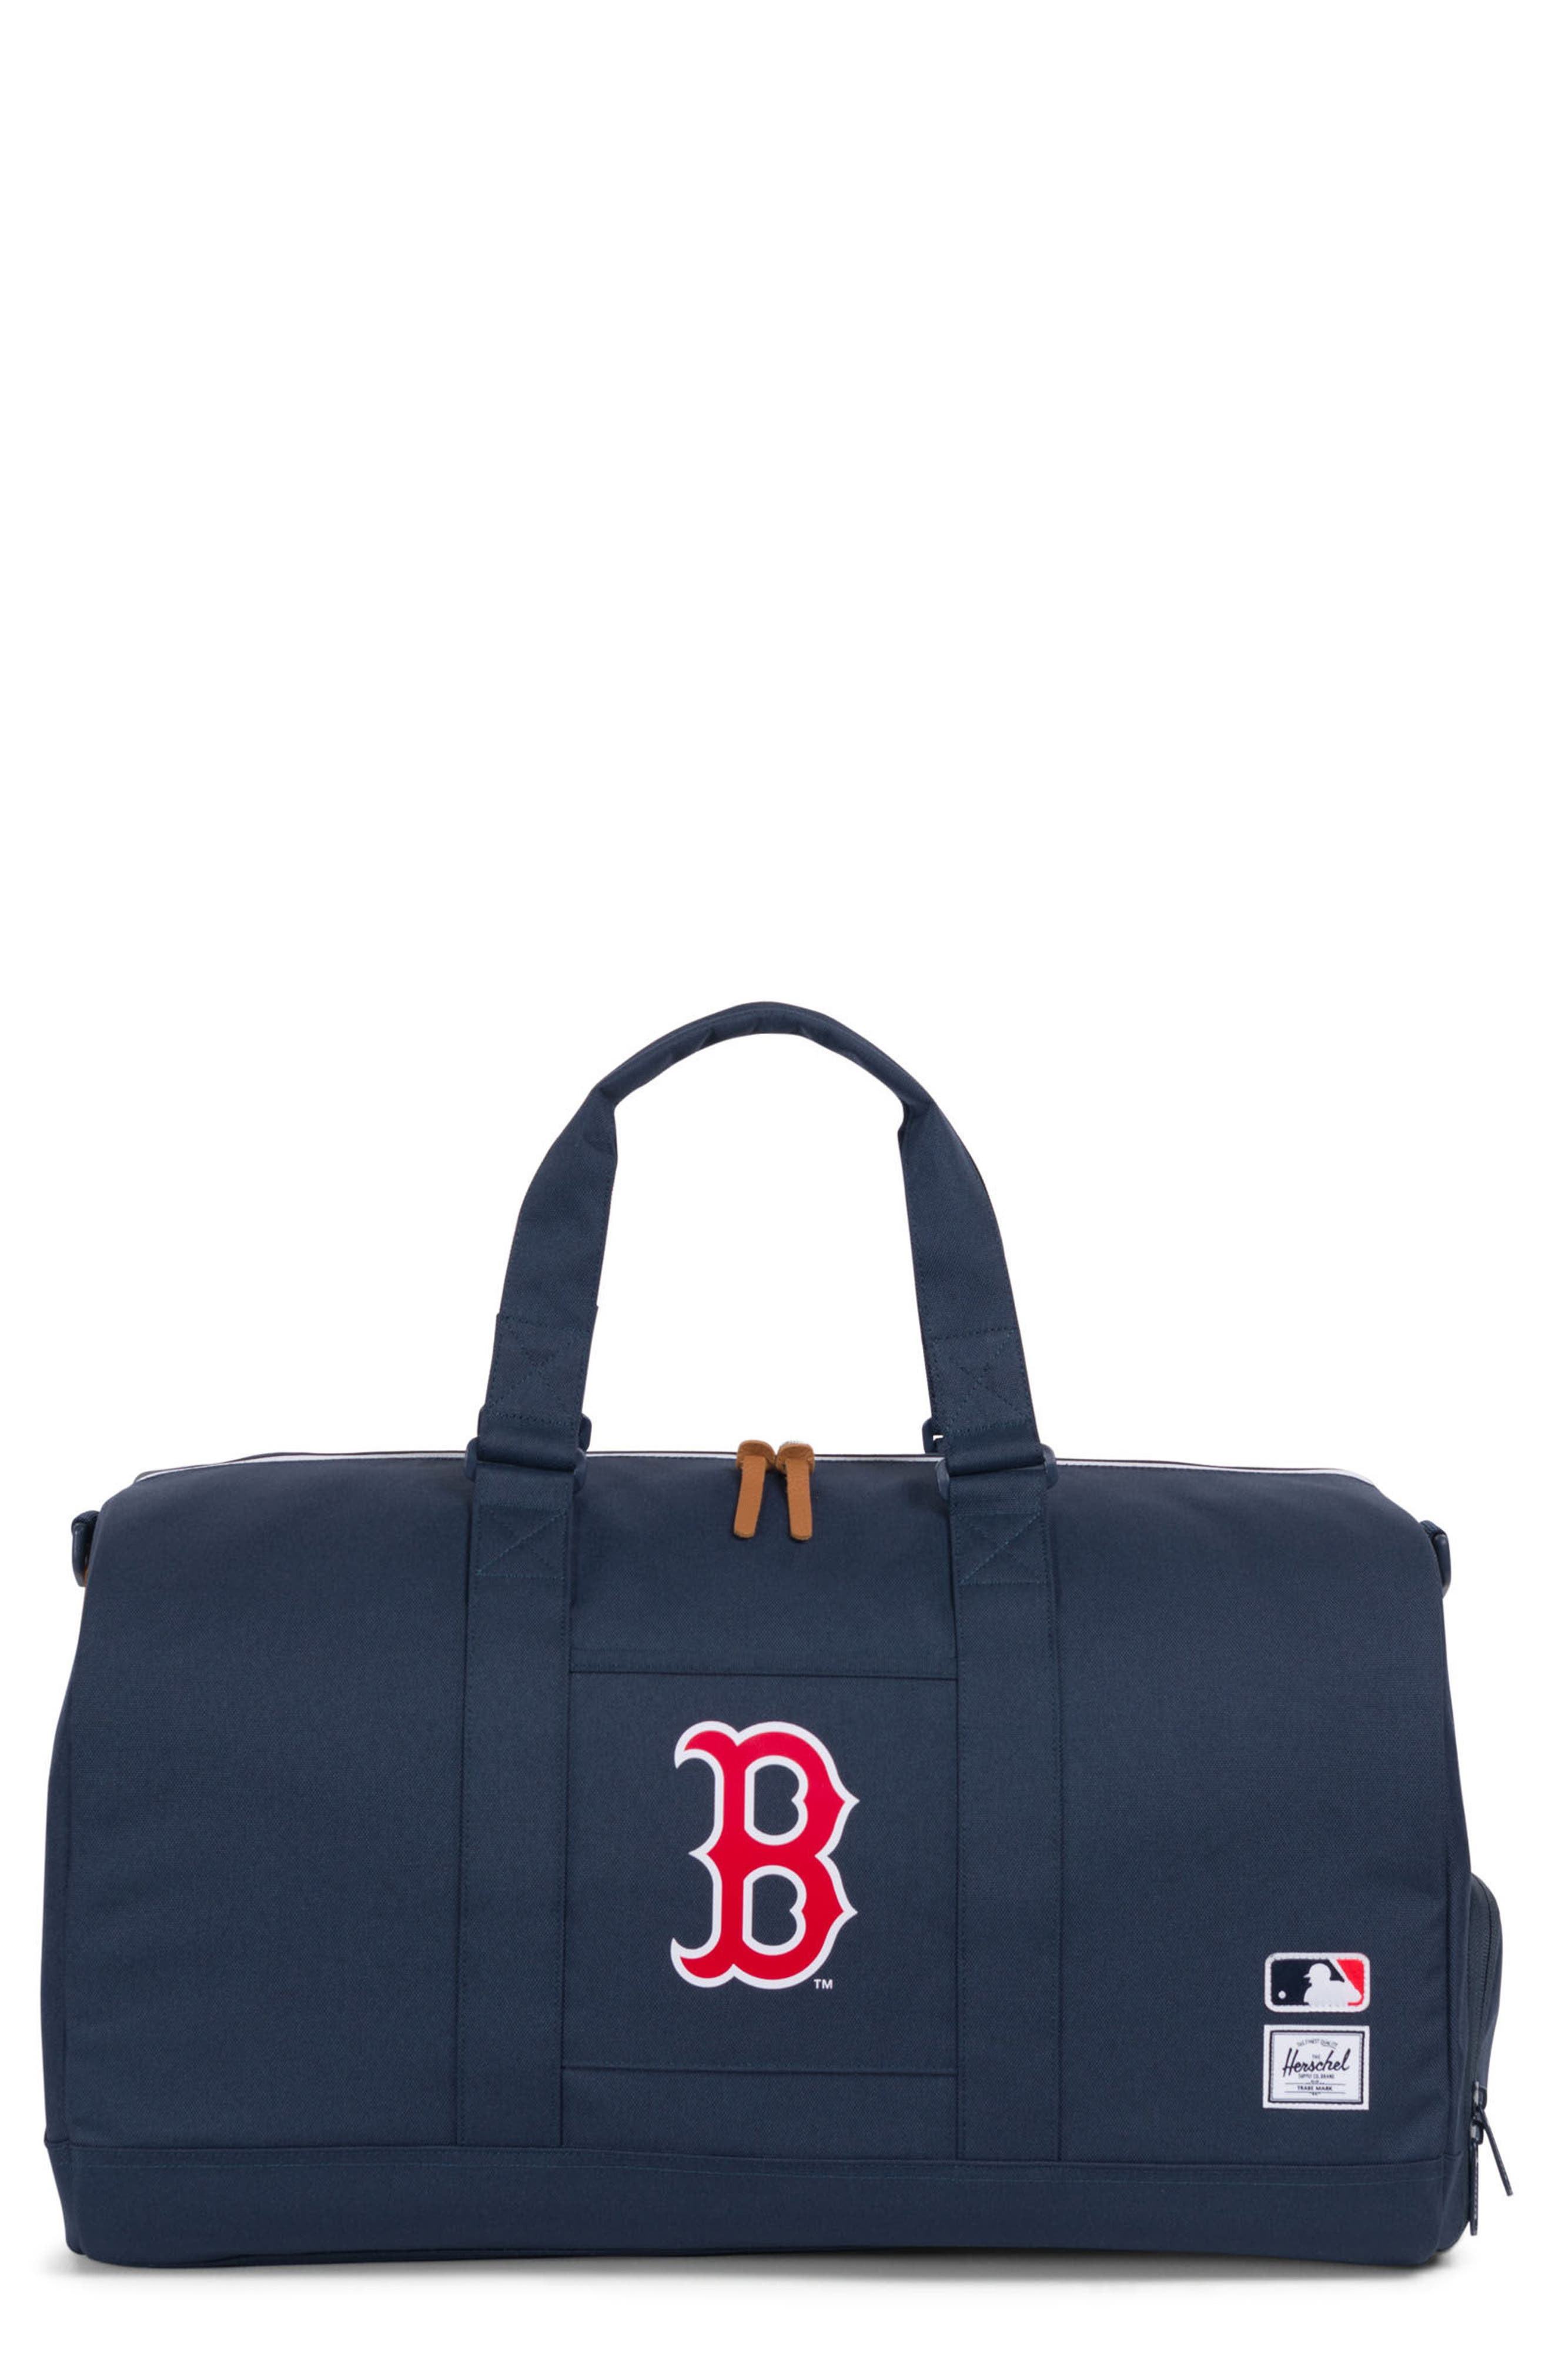 Herschel Supply Co. Novel - MLB American League Duffel Bag